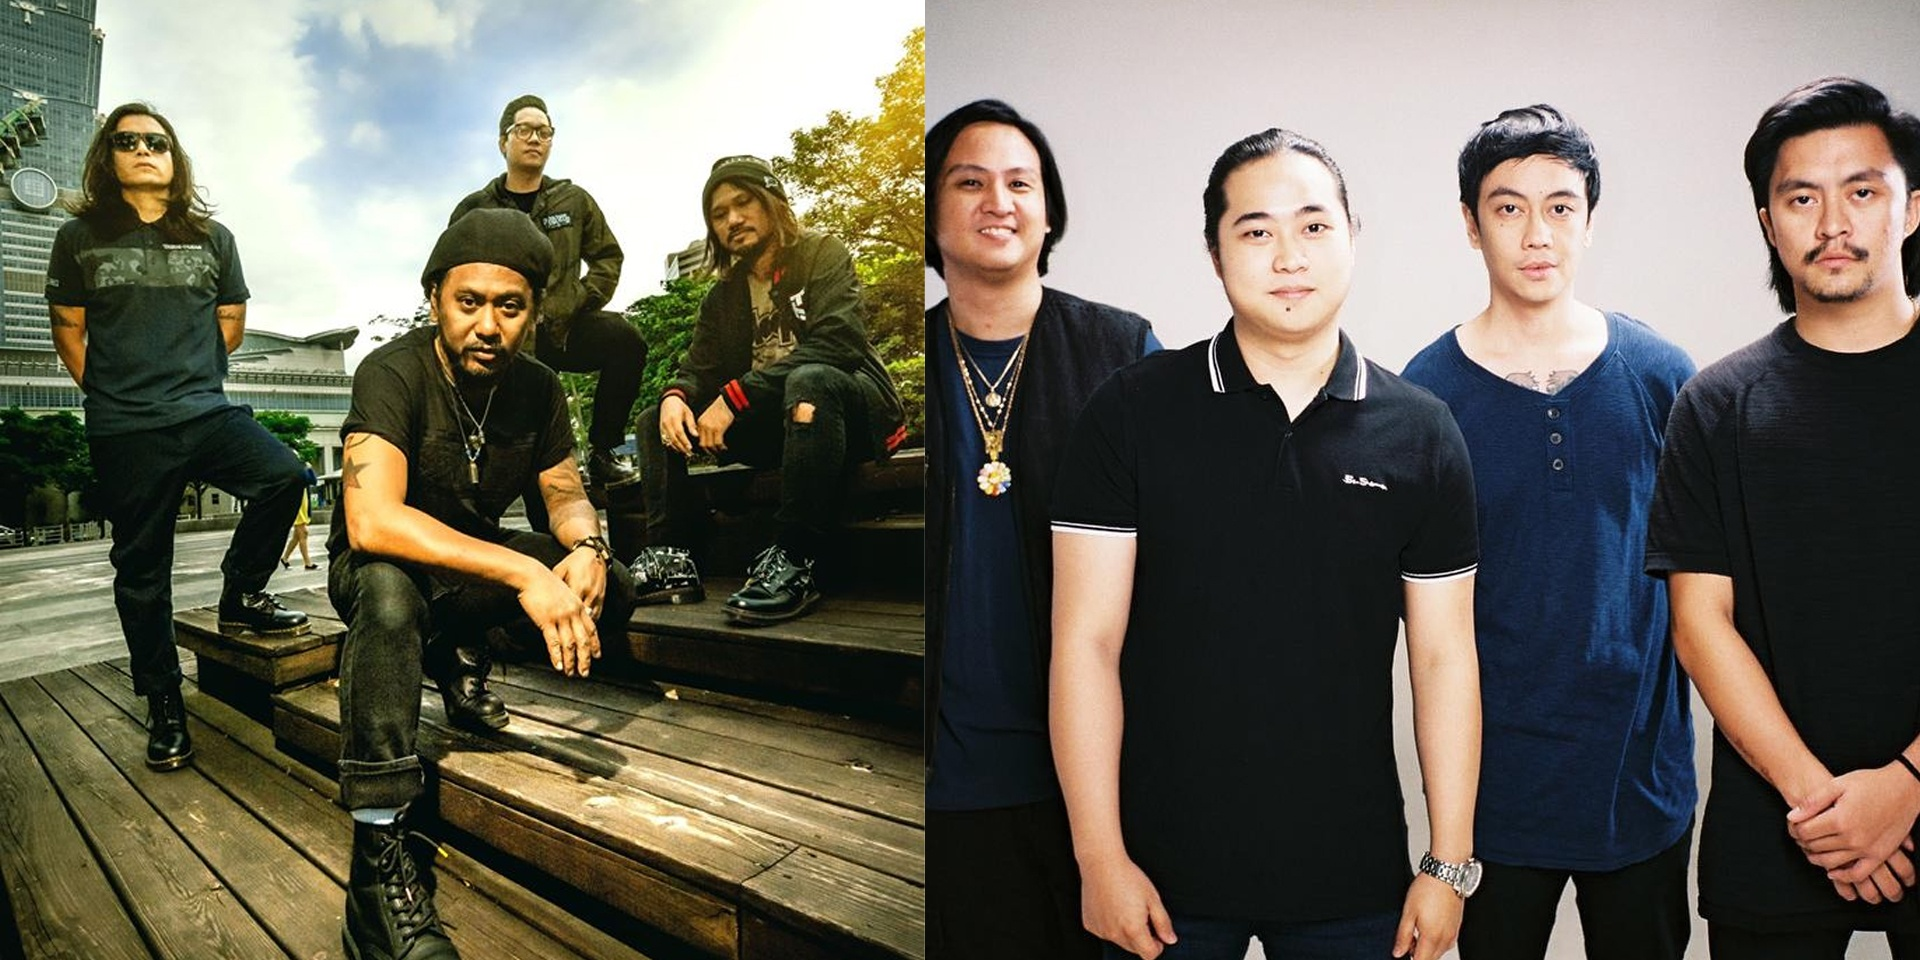 Typecast and Chicosci to perform at Emo Nights 1: Dashboard Confessional and My Chemical Romance